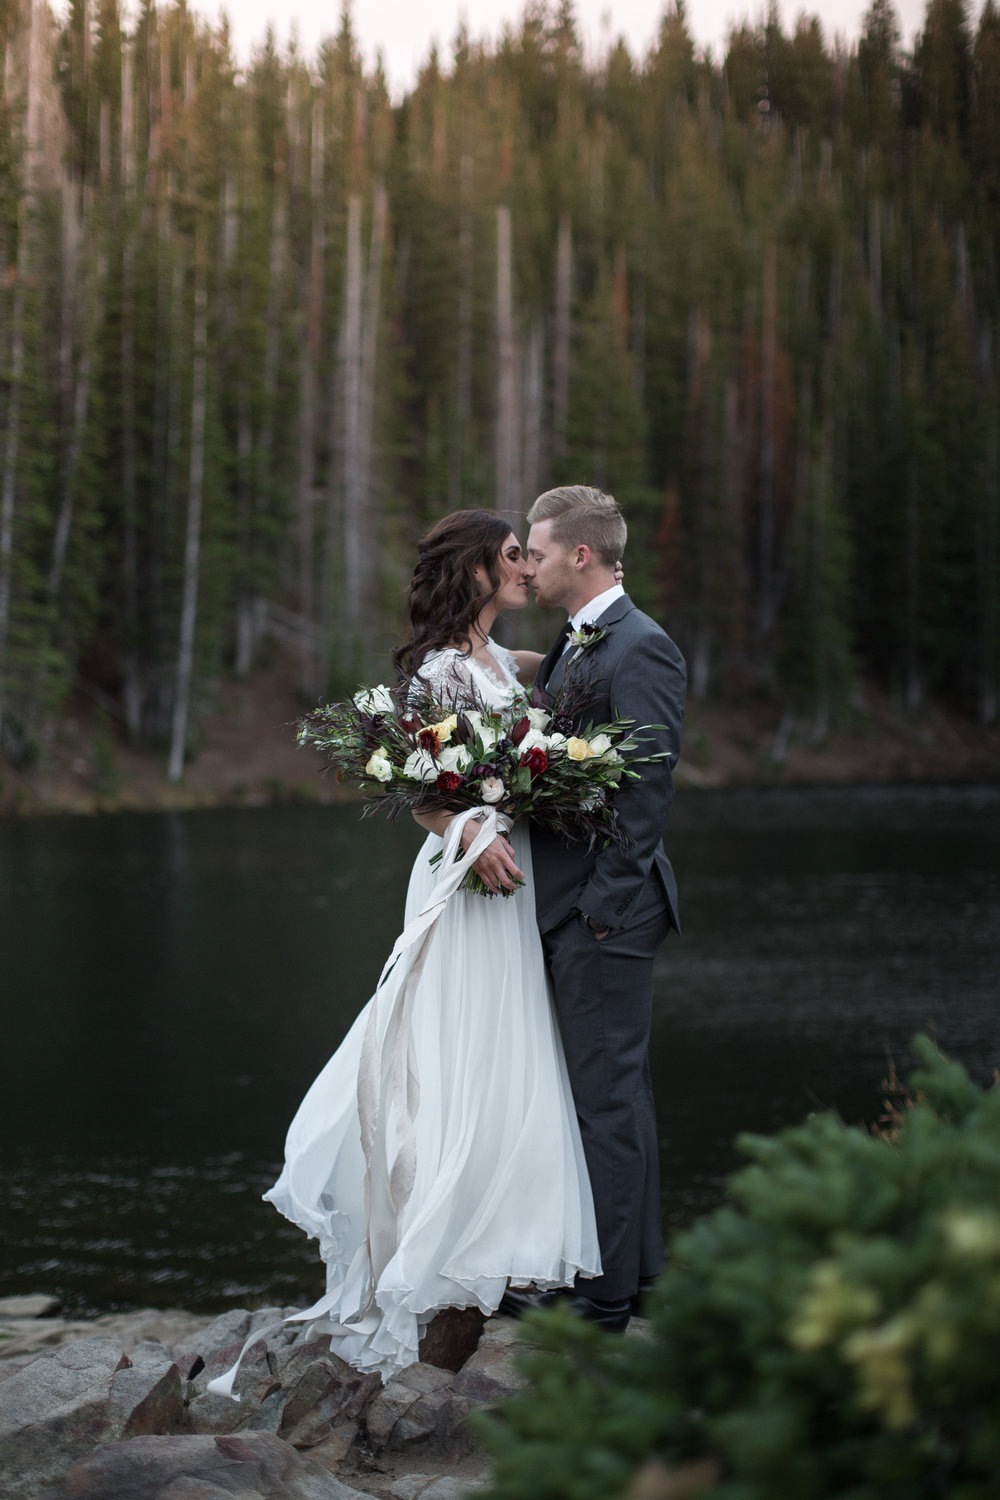 UtahValleyBrideShootTR2016 (19 of 110).jpg